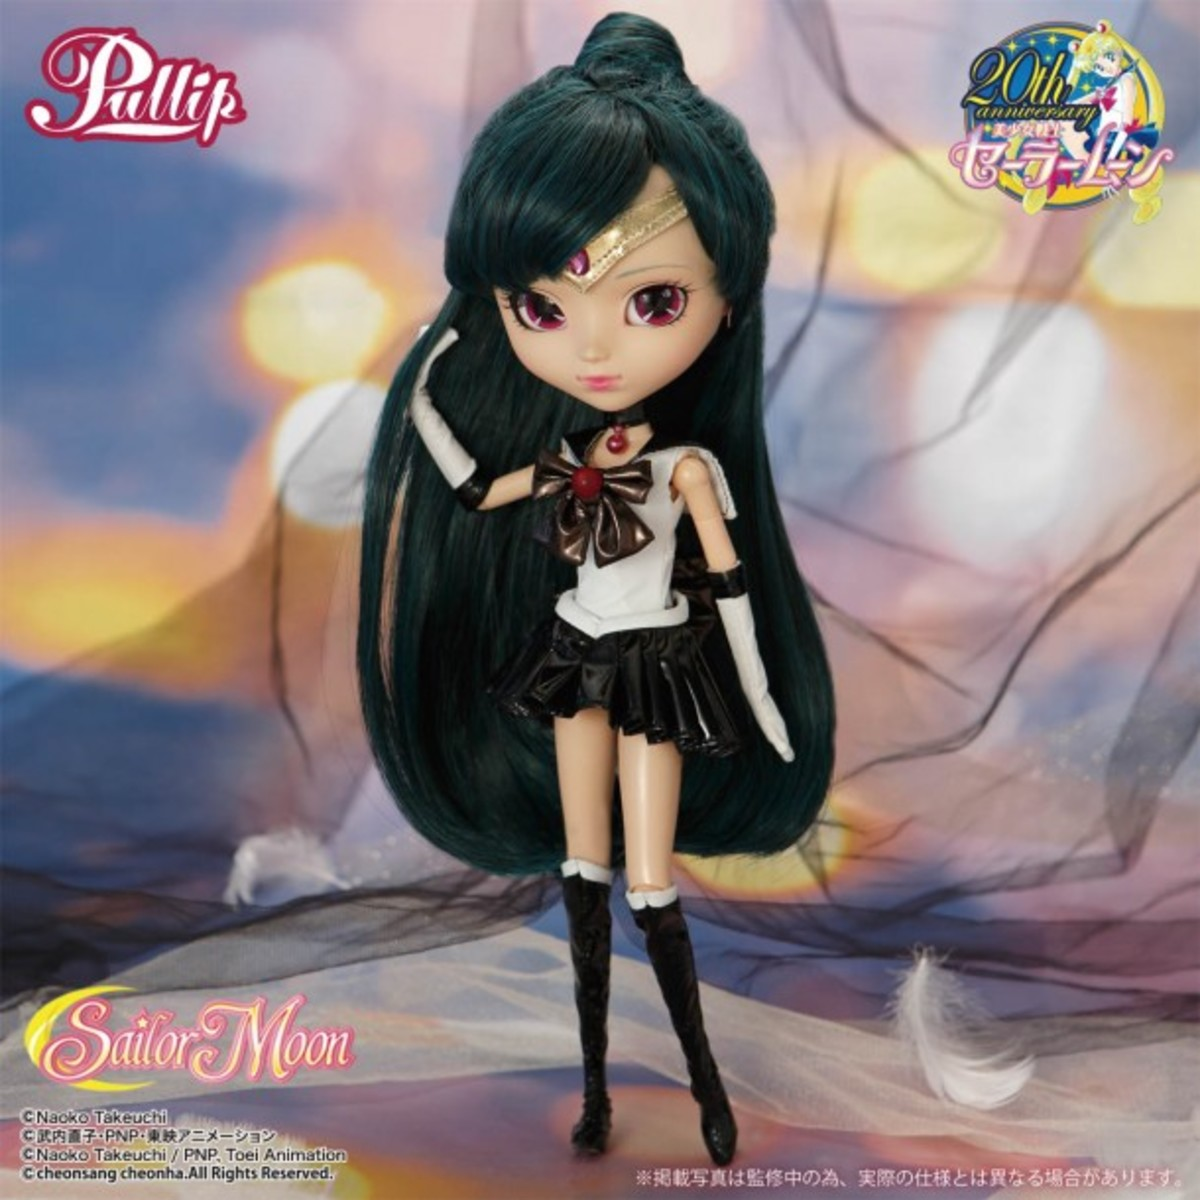 The official Sailor Pluto Pullip doll.